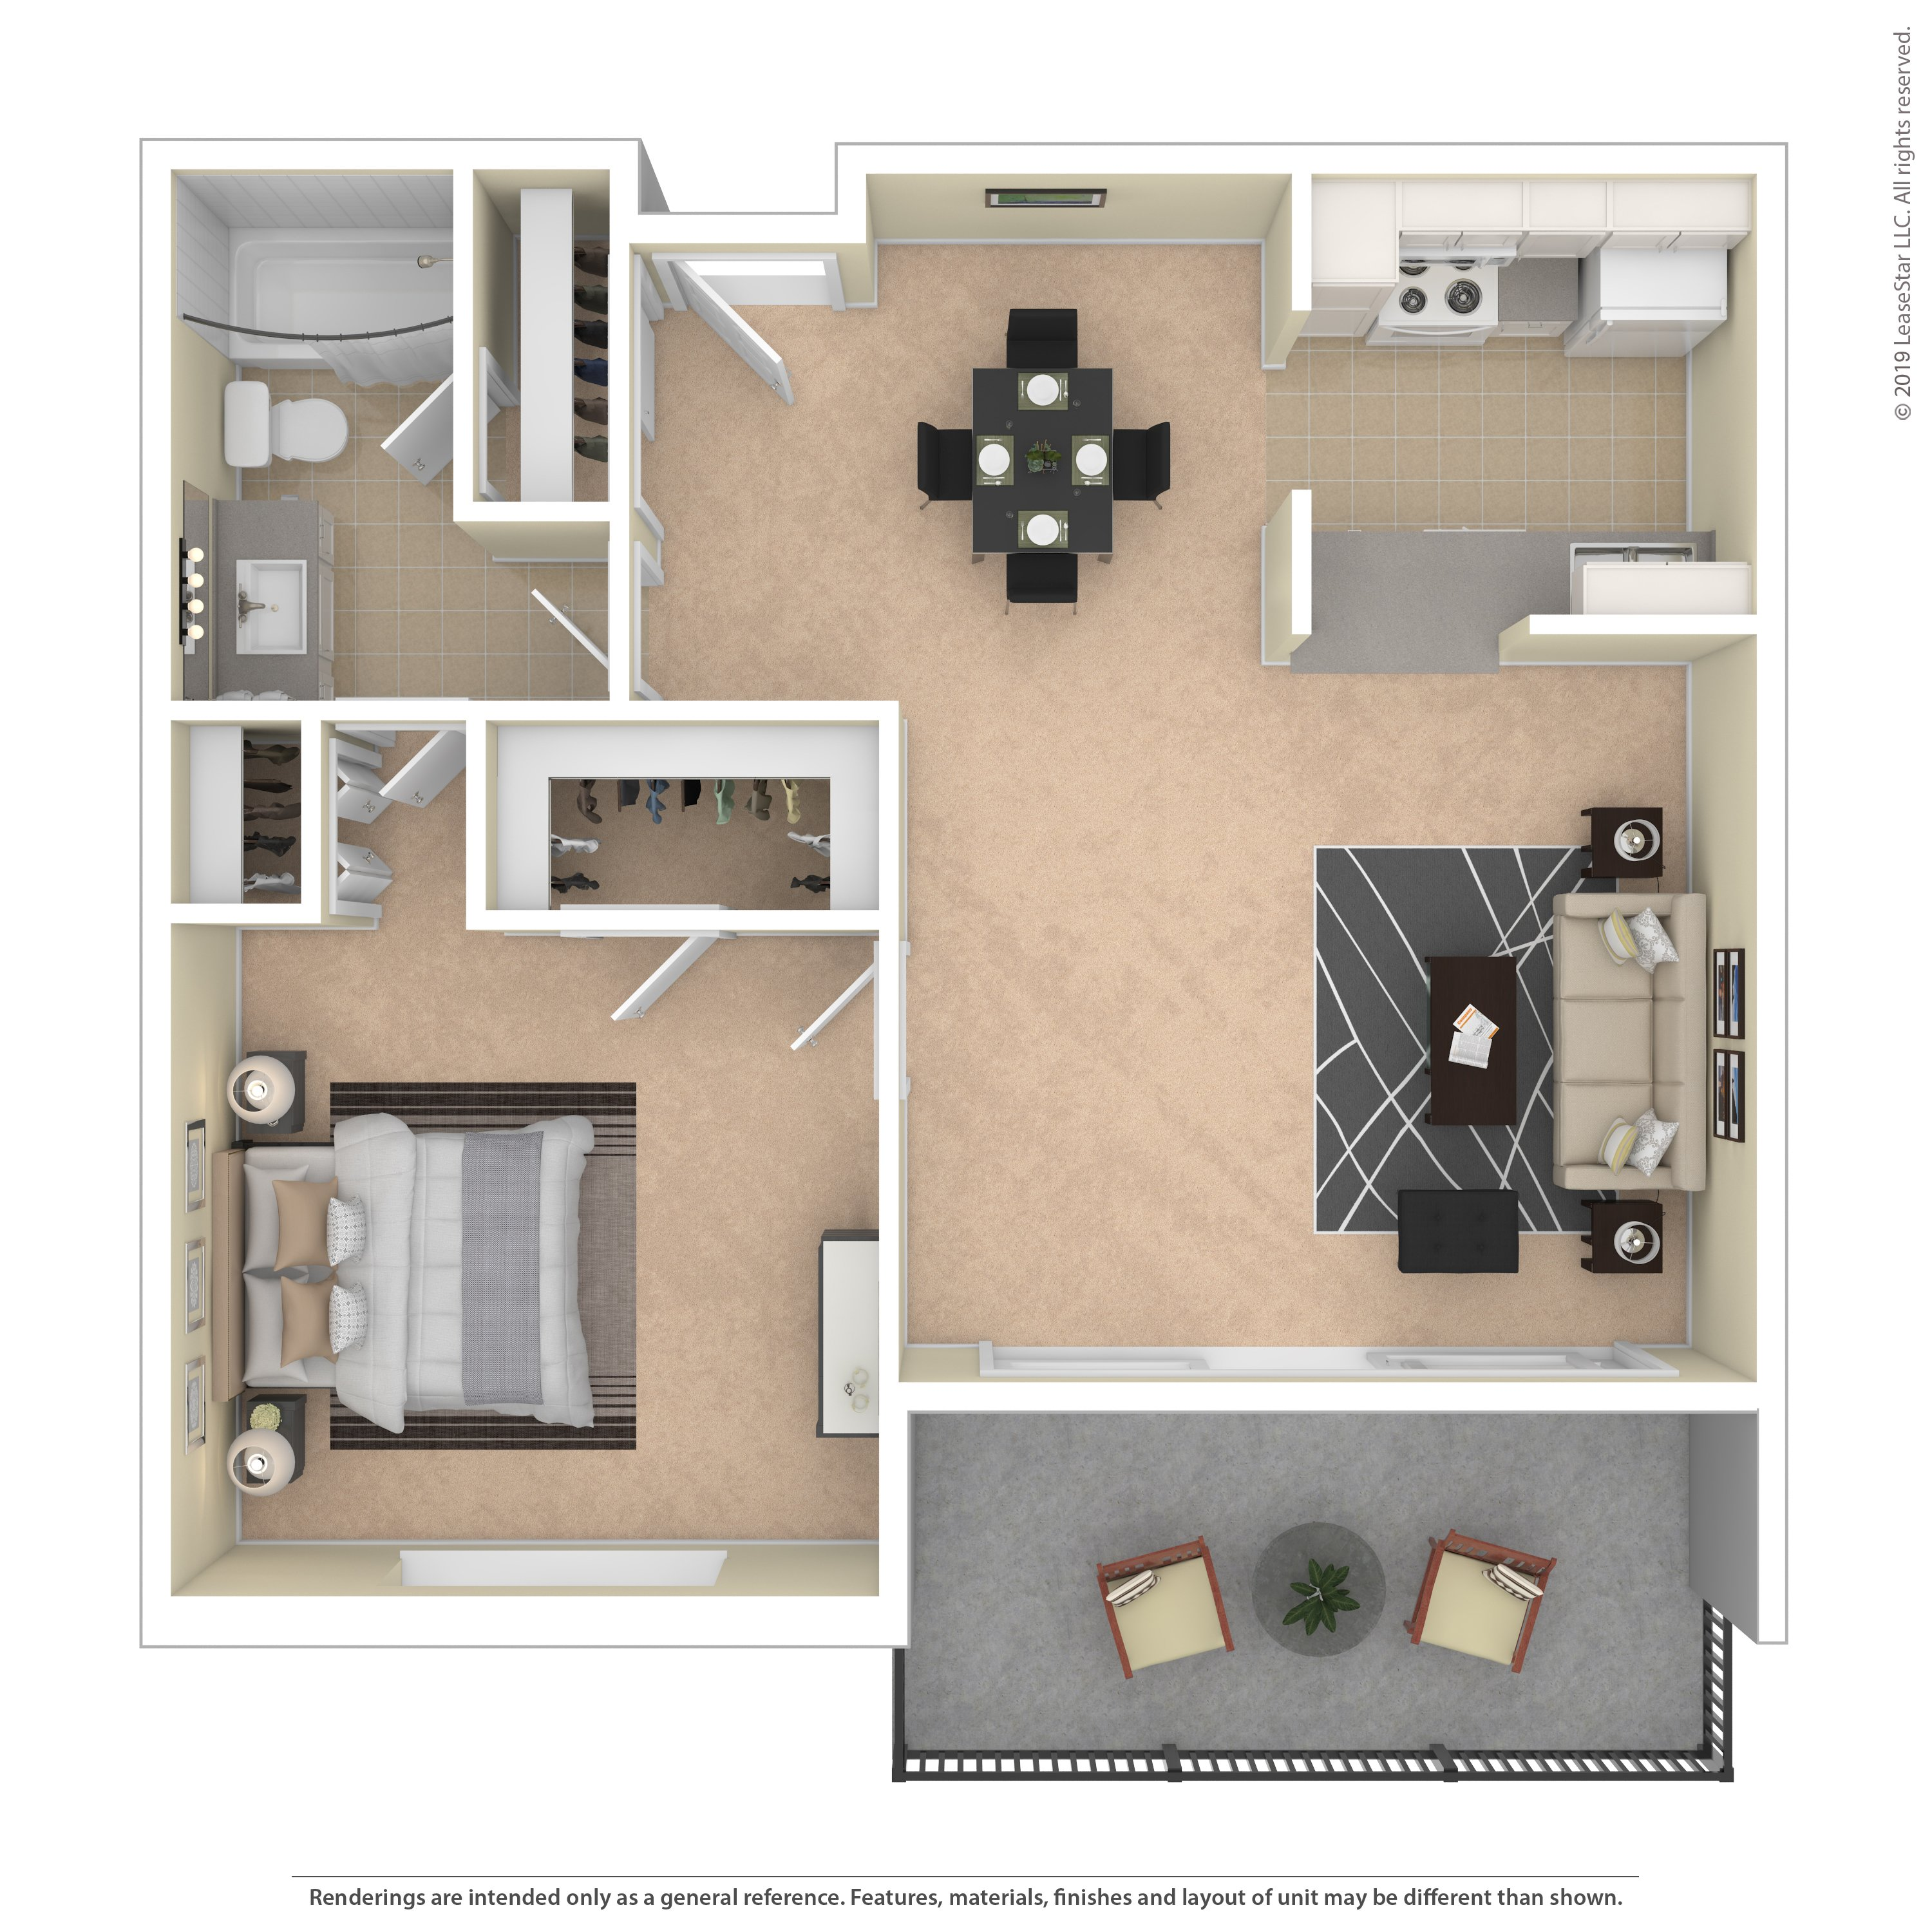 Floor Plans for Shamrock Sapphire Apartments in Houston